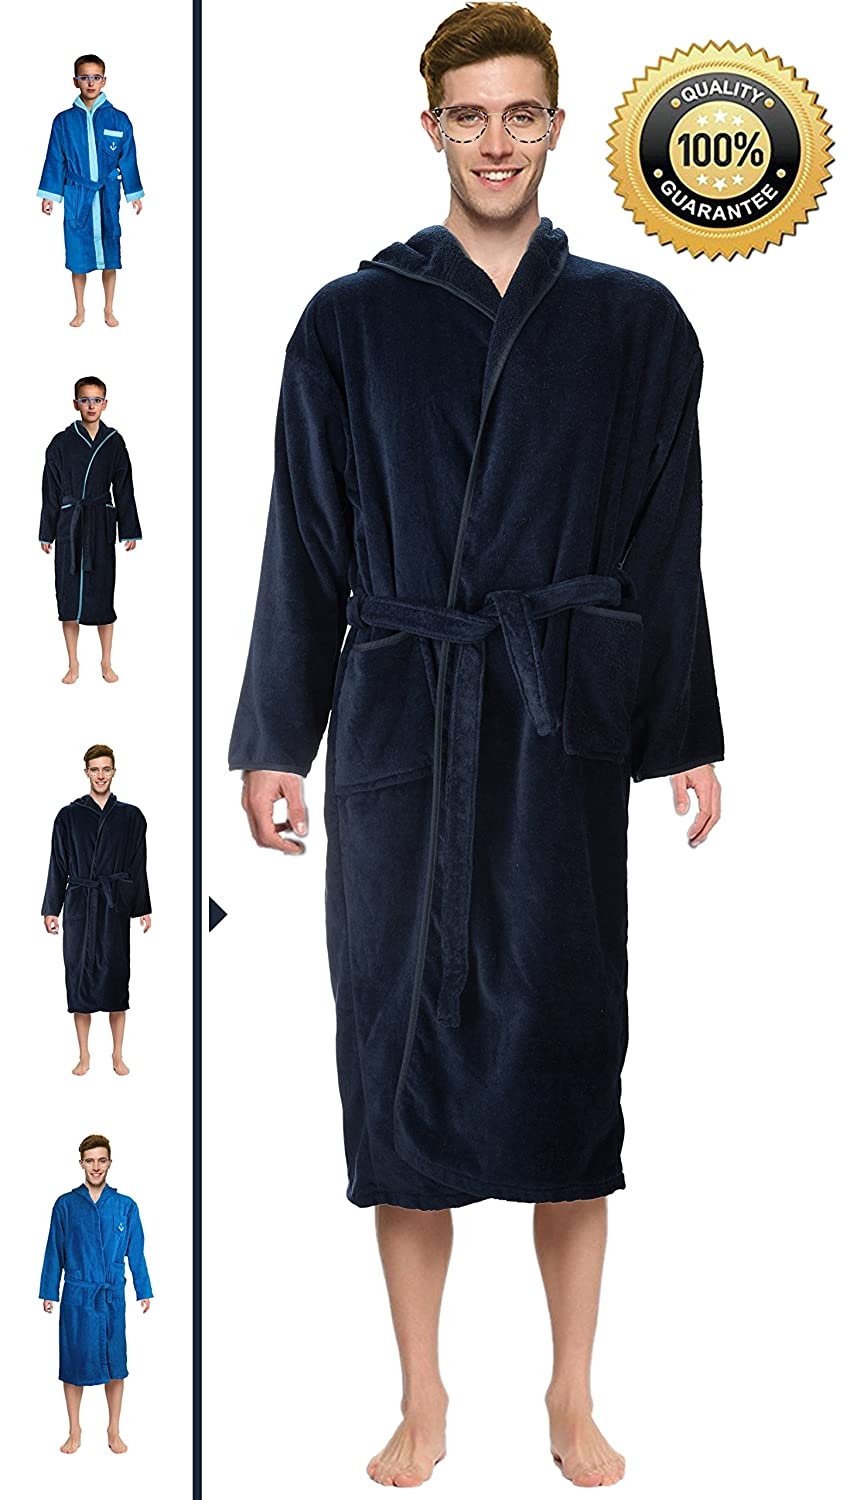 Abstract Bath Robe Towel Men's/Boys 100% Cotton Hooded-Terrycloth-Velour Finishing Outside- 2 Pockets- Color Navy/Blue